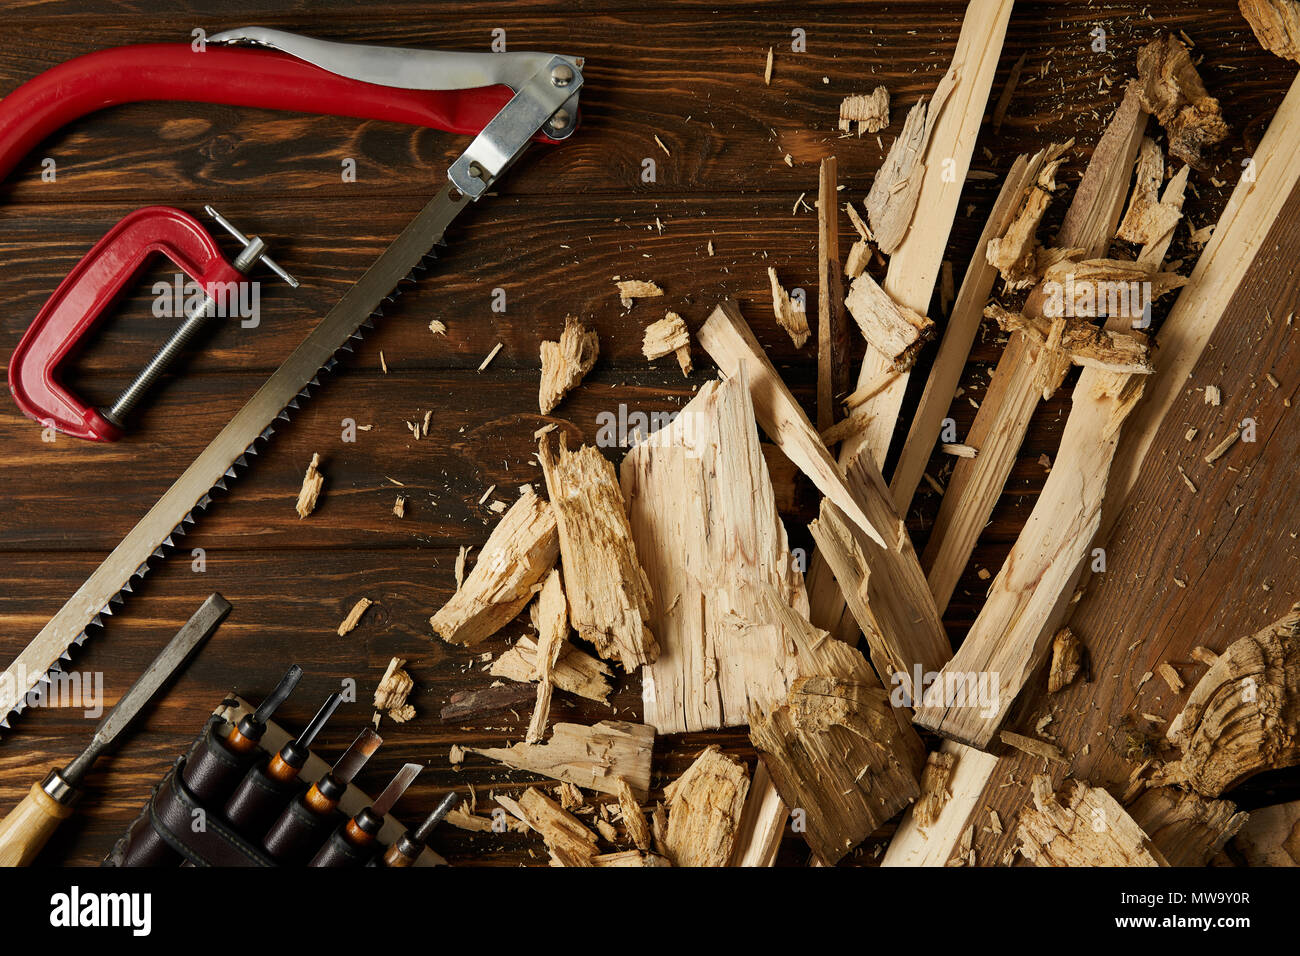 top view of chisels and coping saw with wooden pieces on table Stock Photo